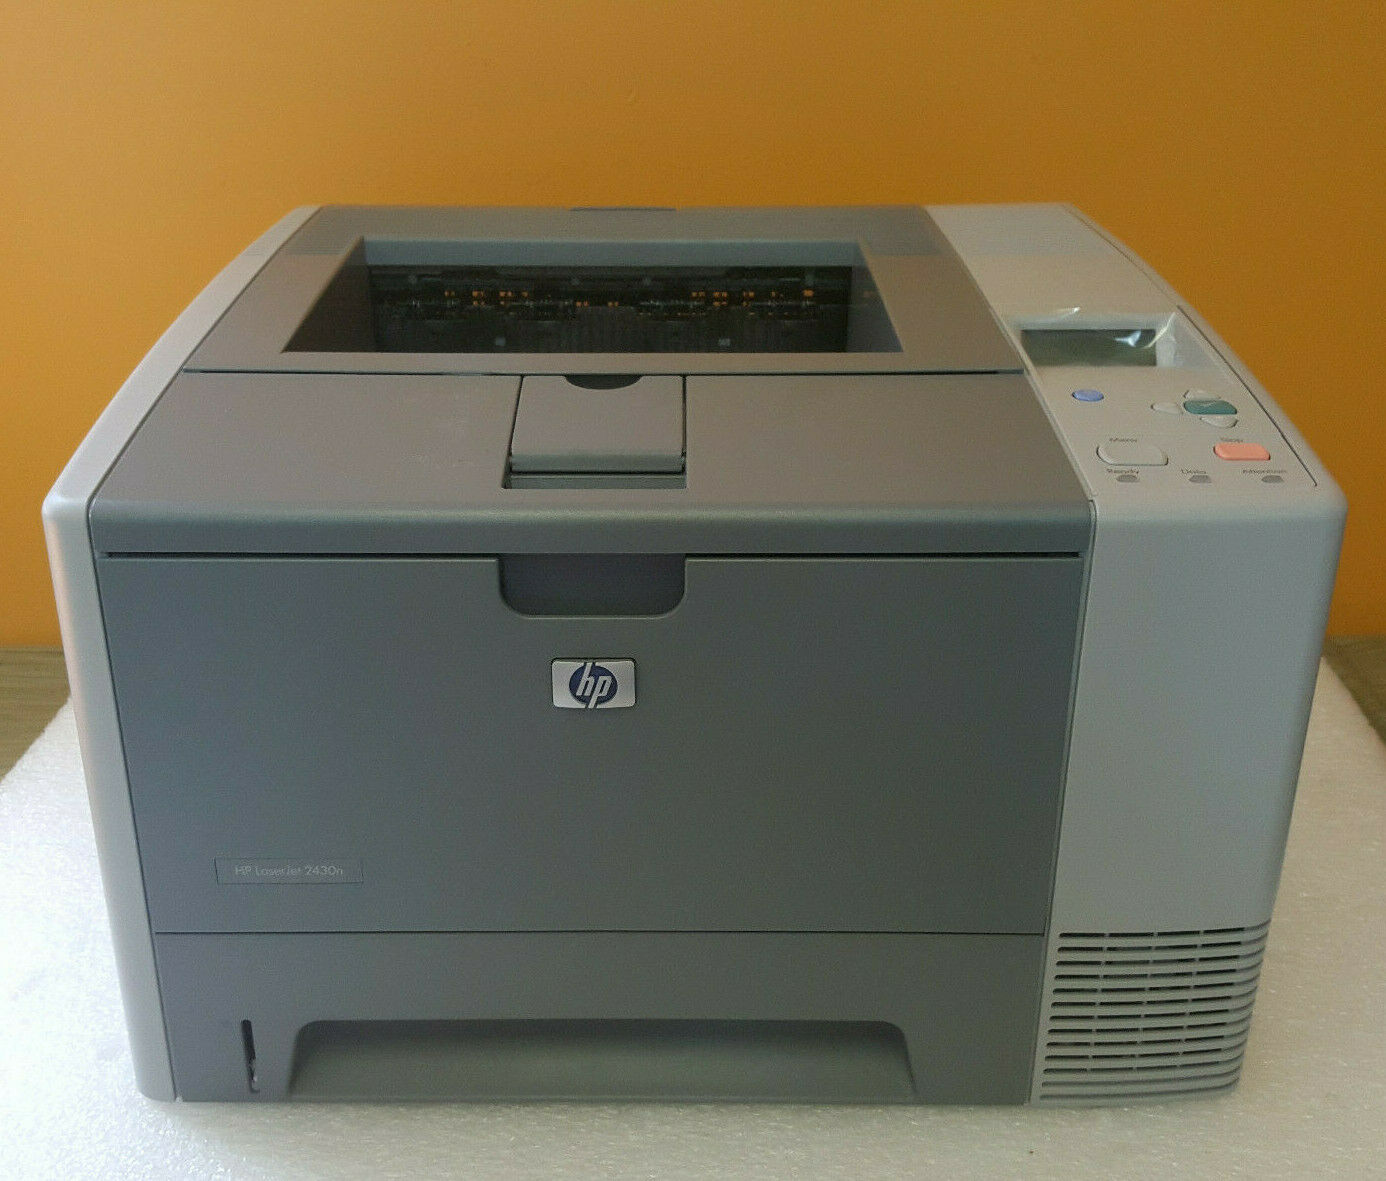 HP2430N PRINTER DRIVER UPDATE